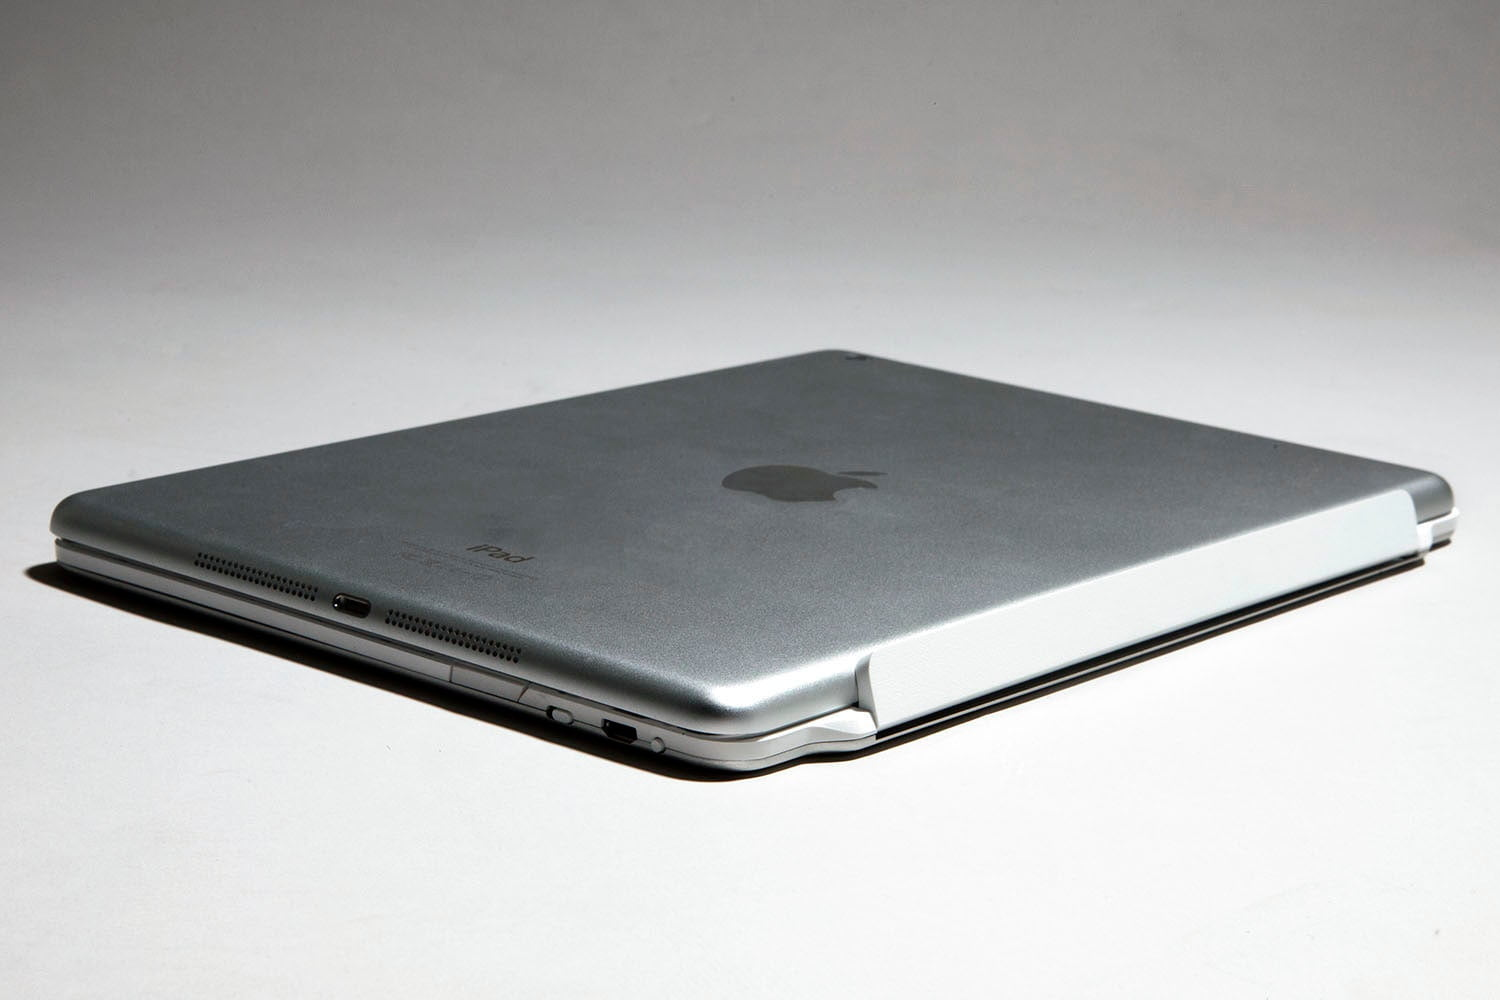 Logitech prepares for the iPad Air with its new Ultrathin range